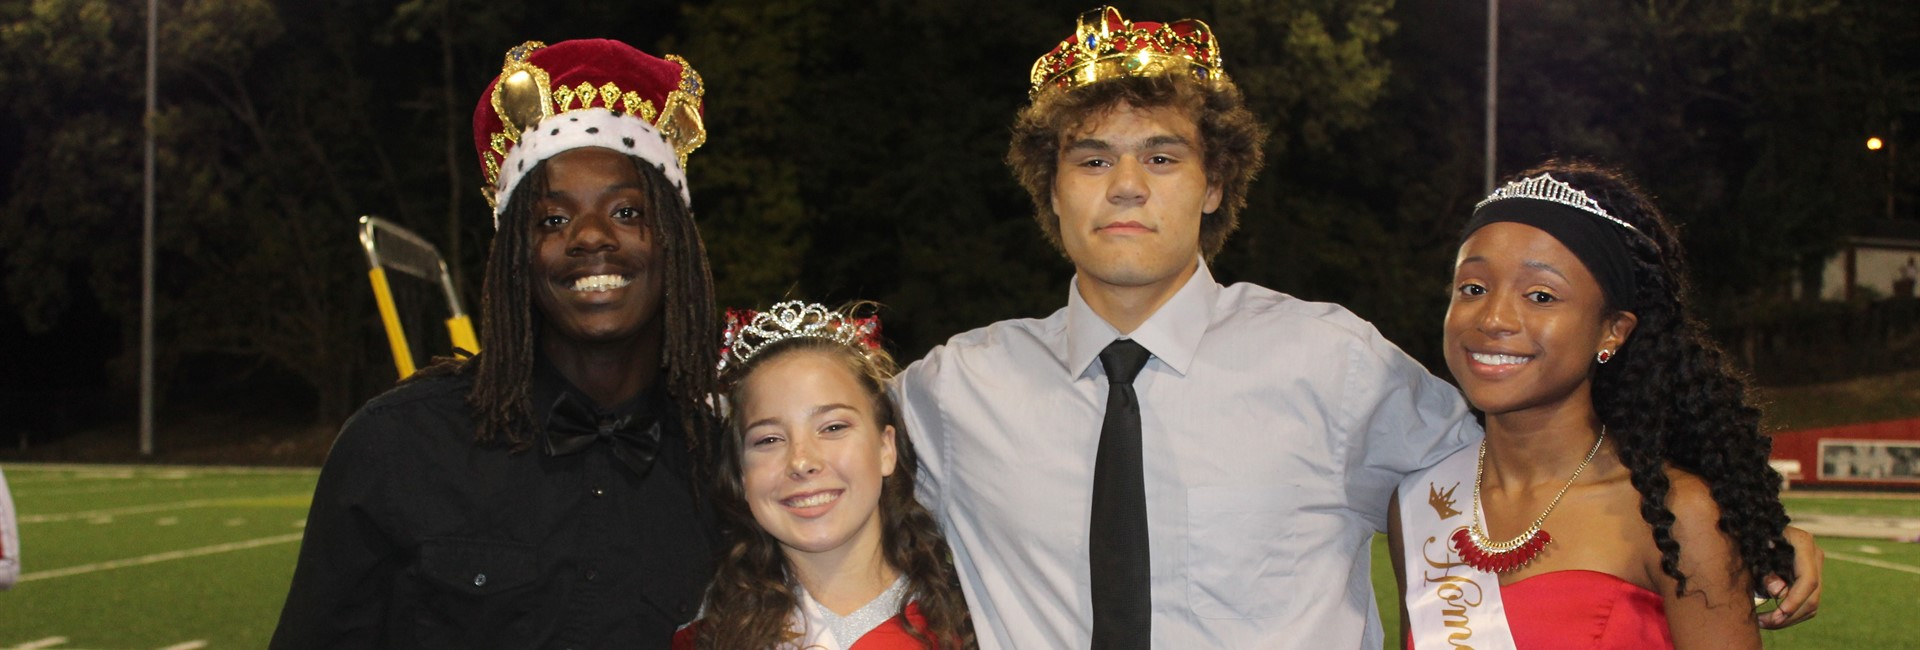 Homecoming King and Queen, Prince and Princess